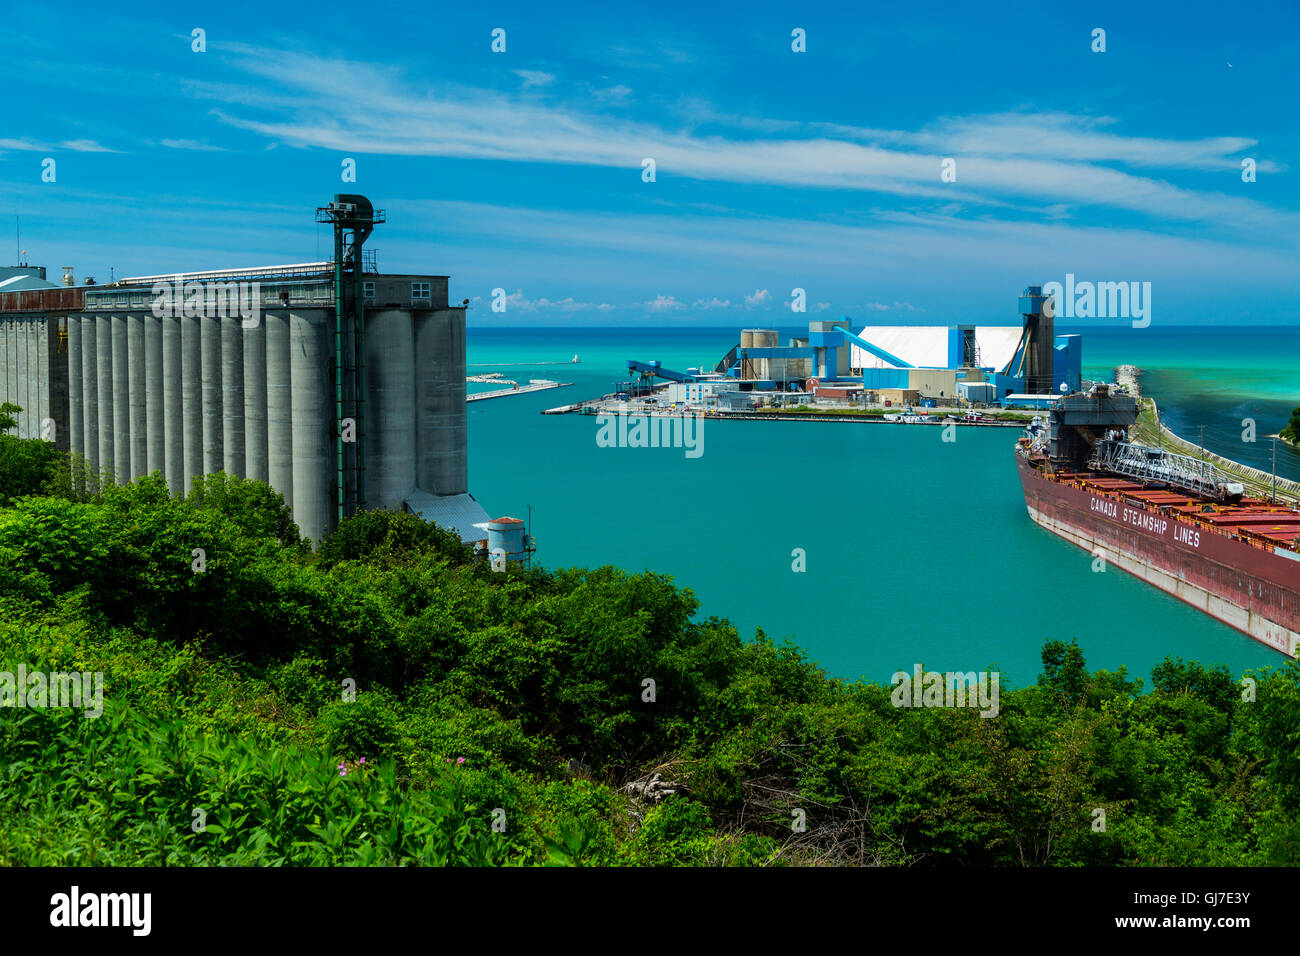 Salt plant and Frieght ship on Lake Huron, Goderich, Ontario, Canada - Stock Image